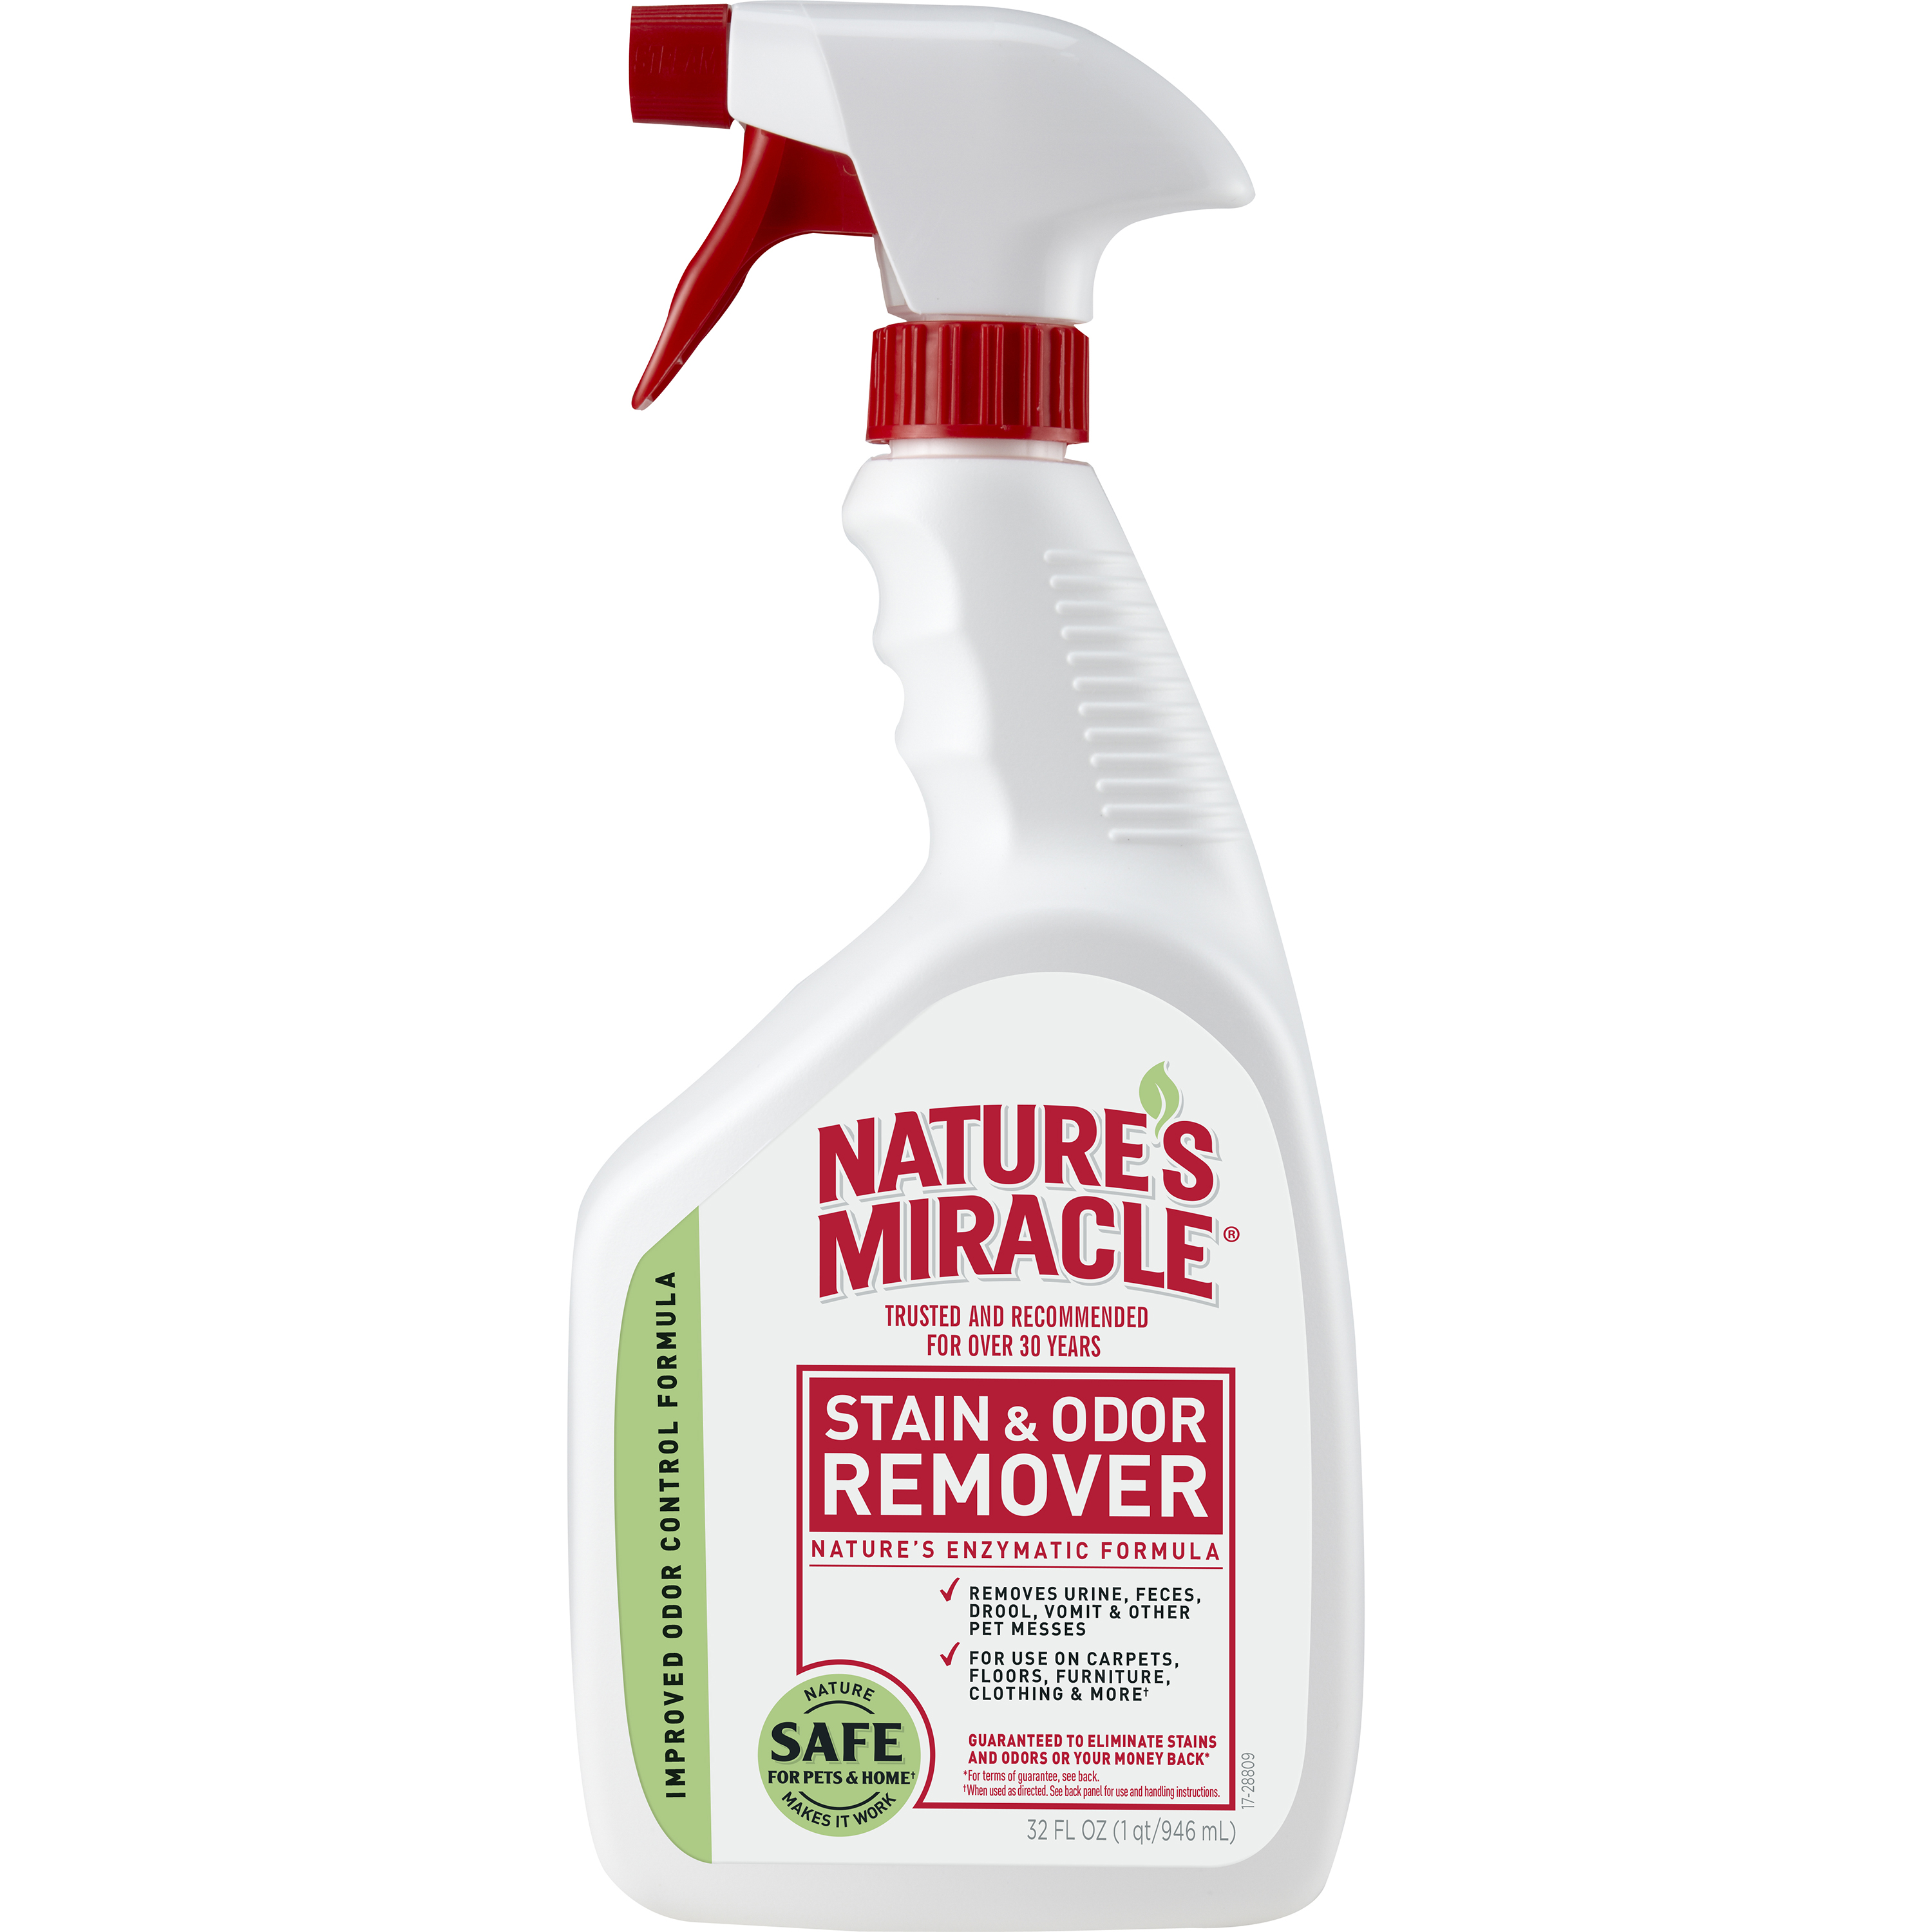 Original Dog Stain and Odor Remover | Nature's Miracle